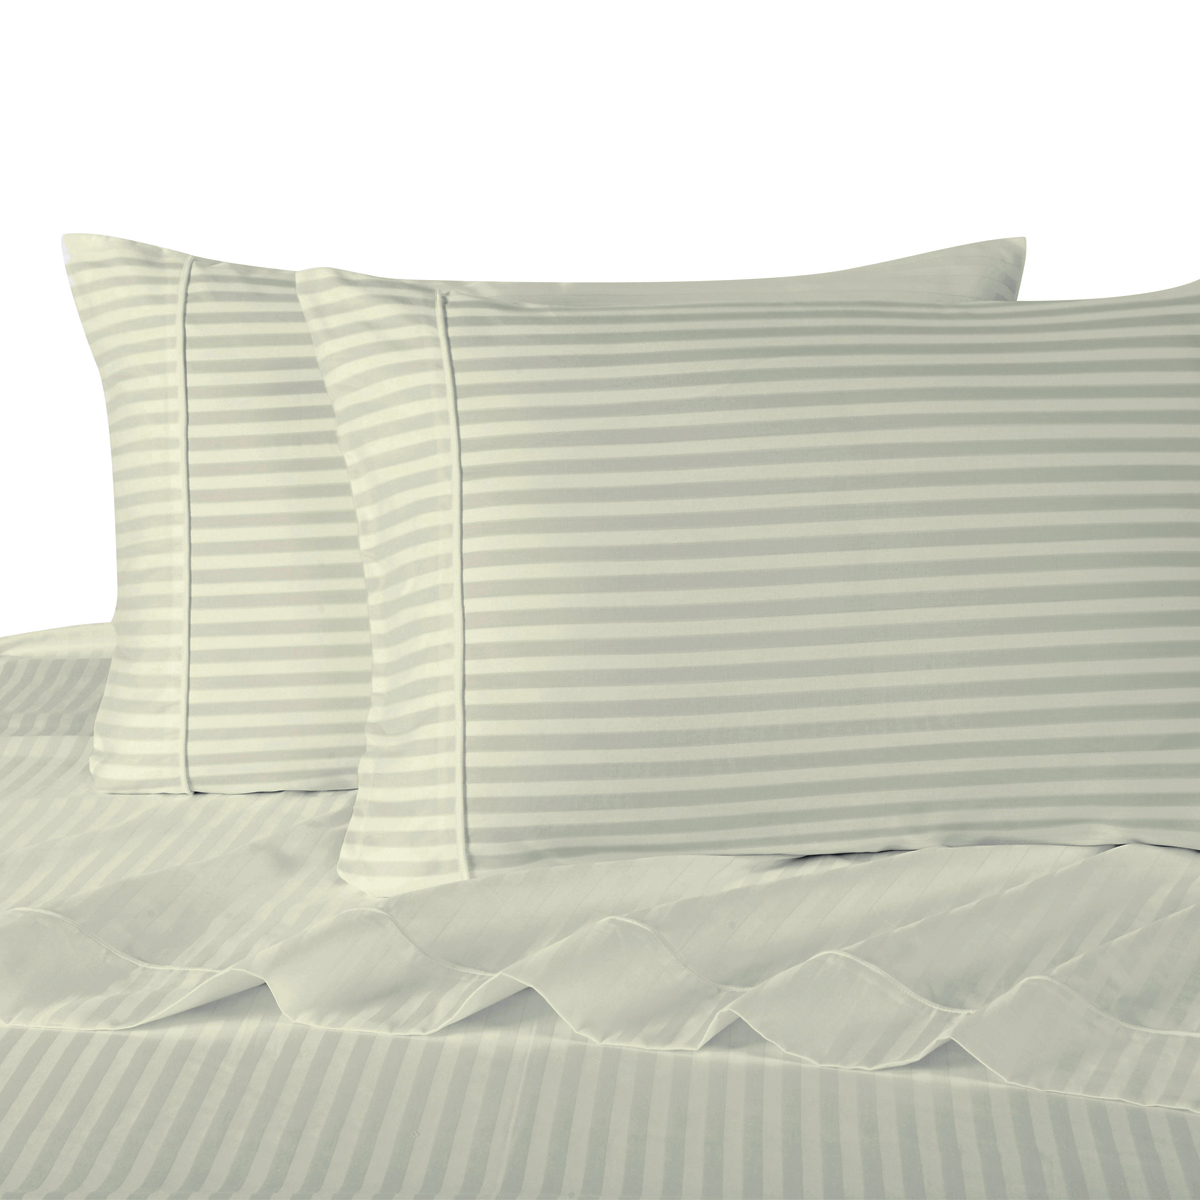 Luxury 100% Cotton 600 Thread Count Sheets Damask Striped Bed Sheets Set - Twin-XL - White